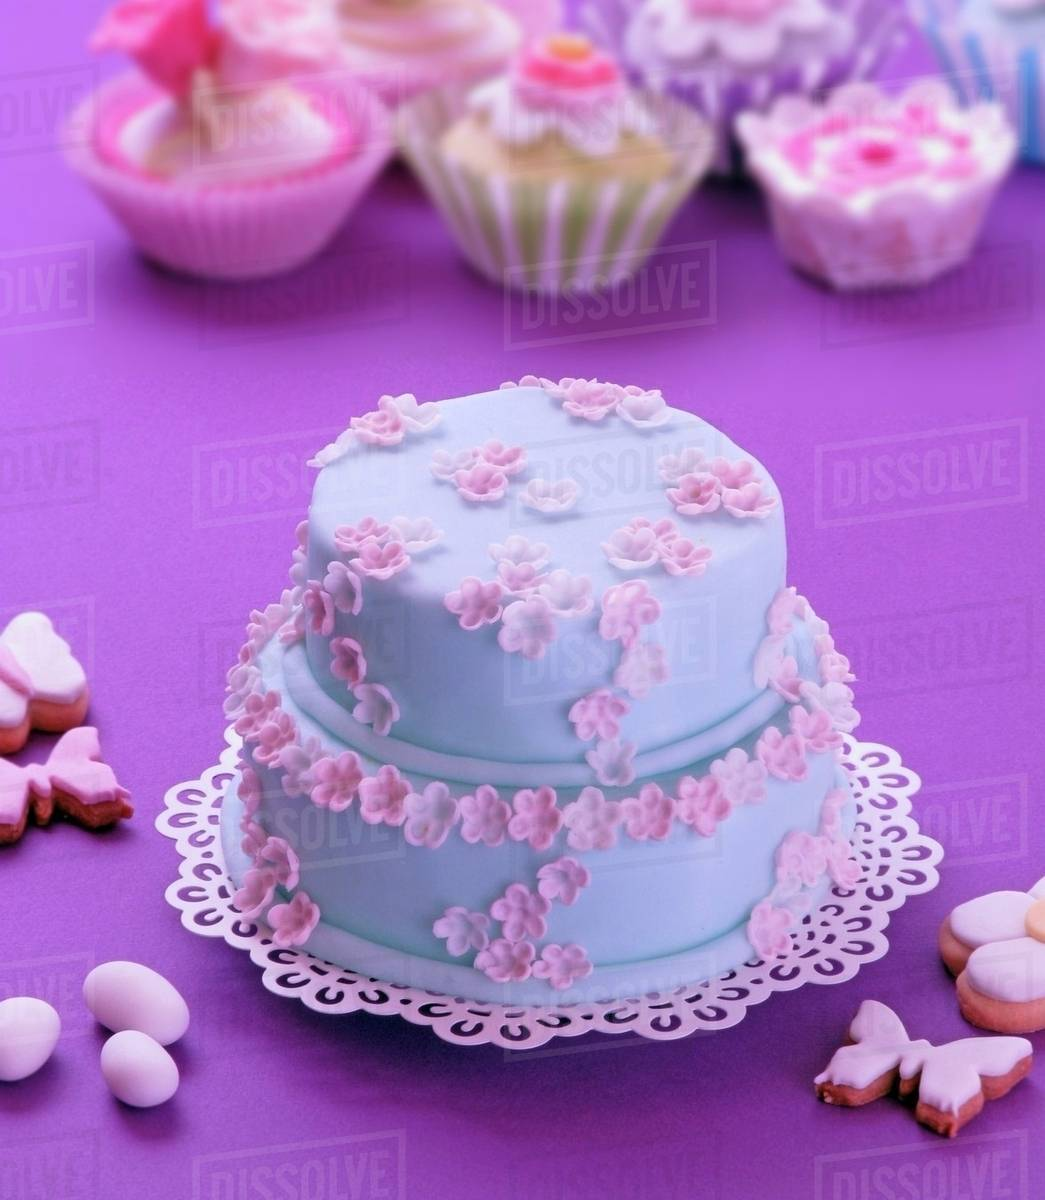 A Two Tier Easter Cake Decorated With Blue Icing And Pink Sugar